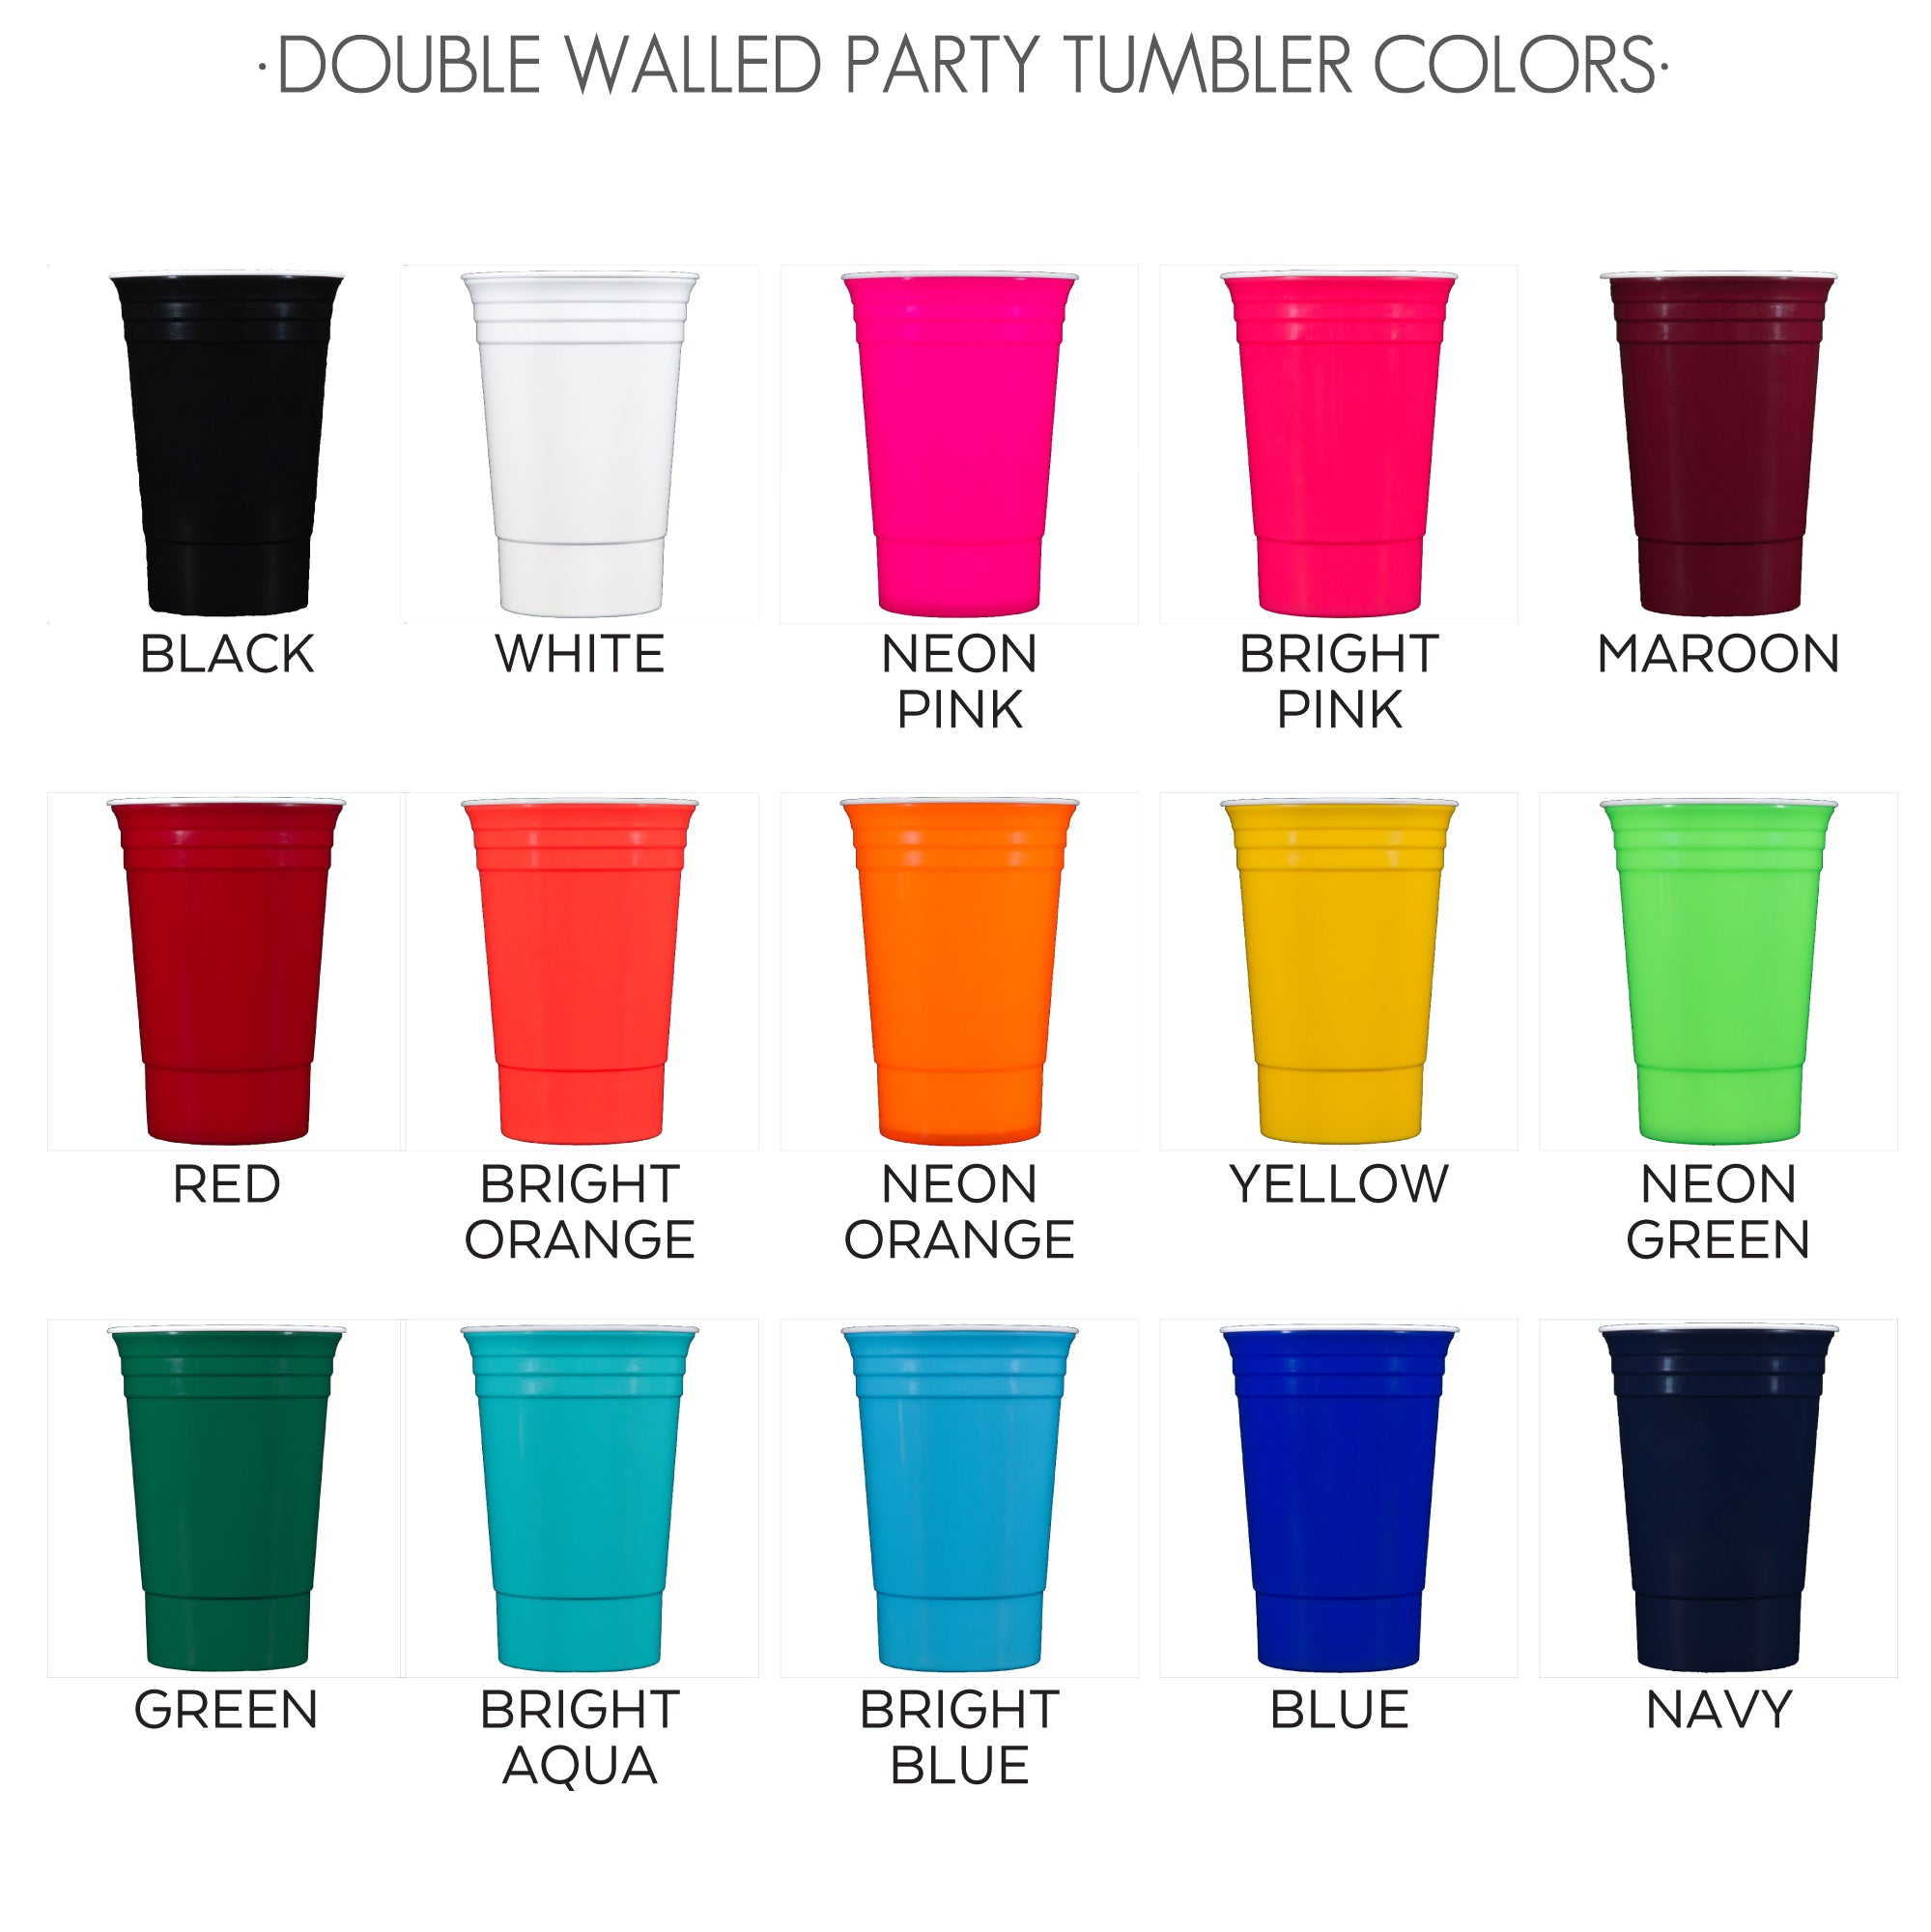 double walled party tumbler colors